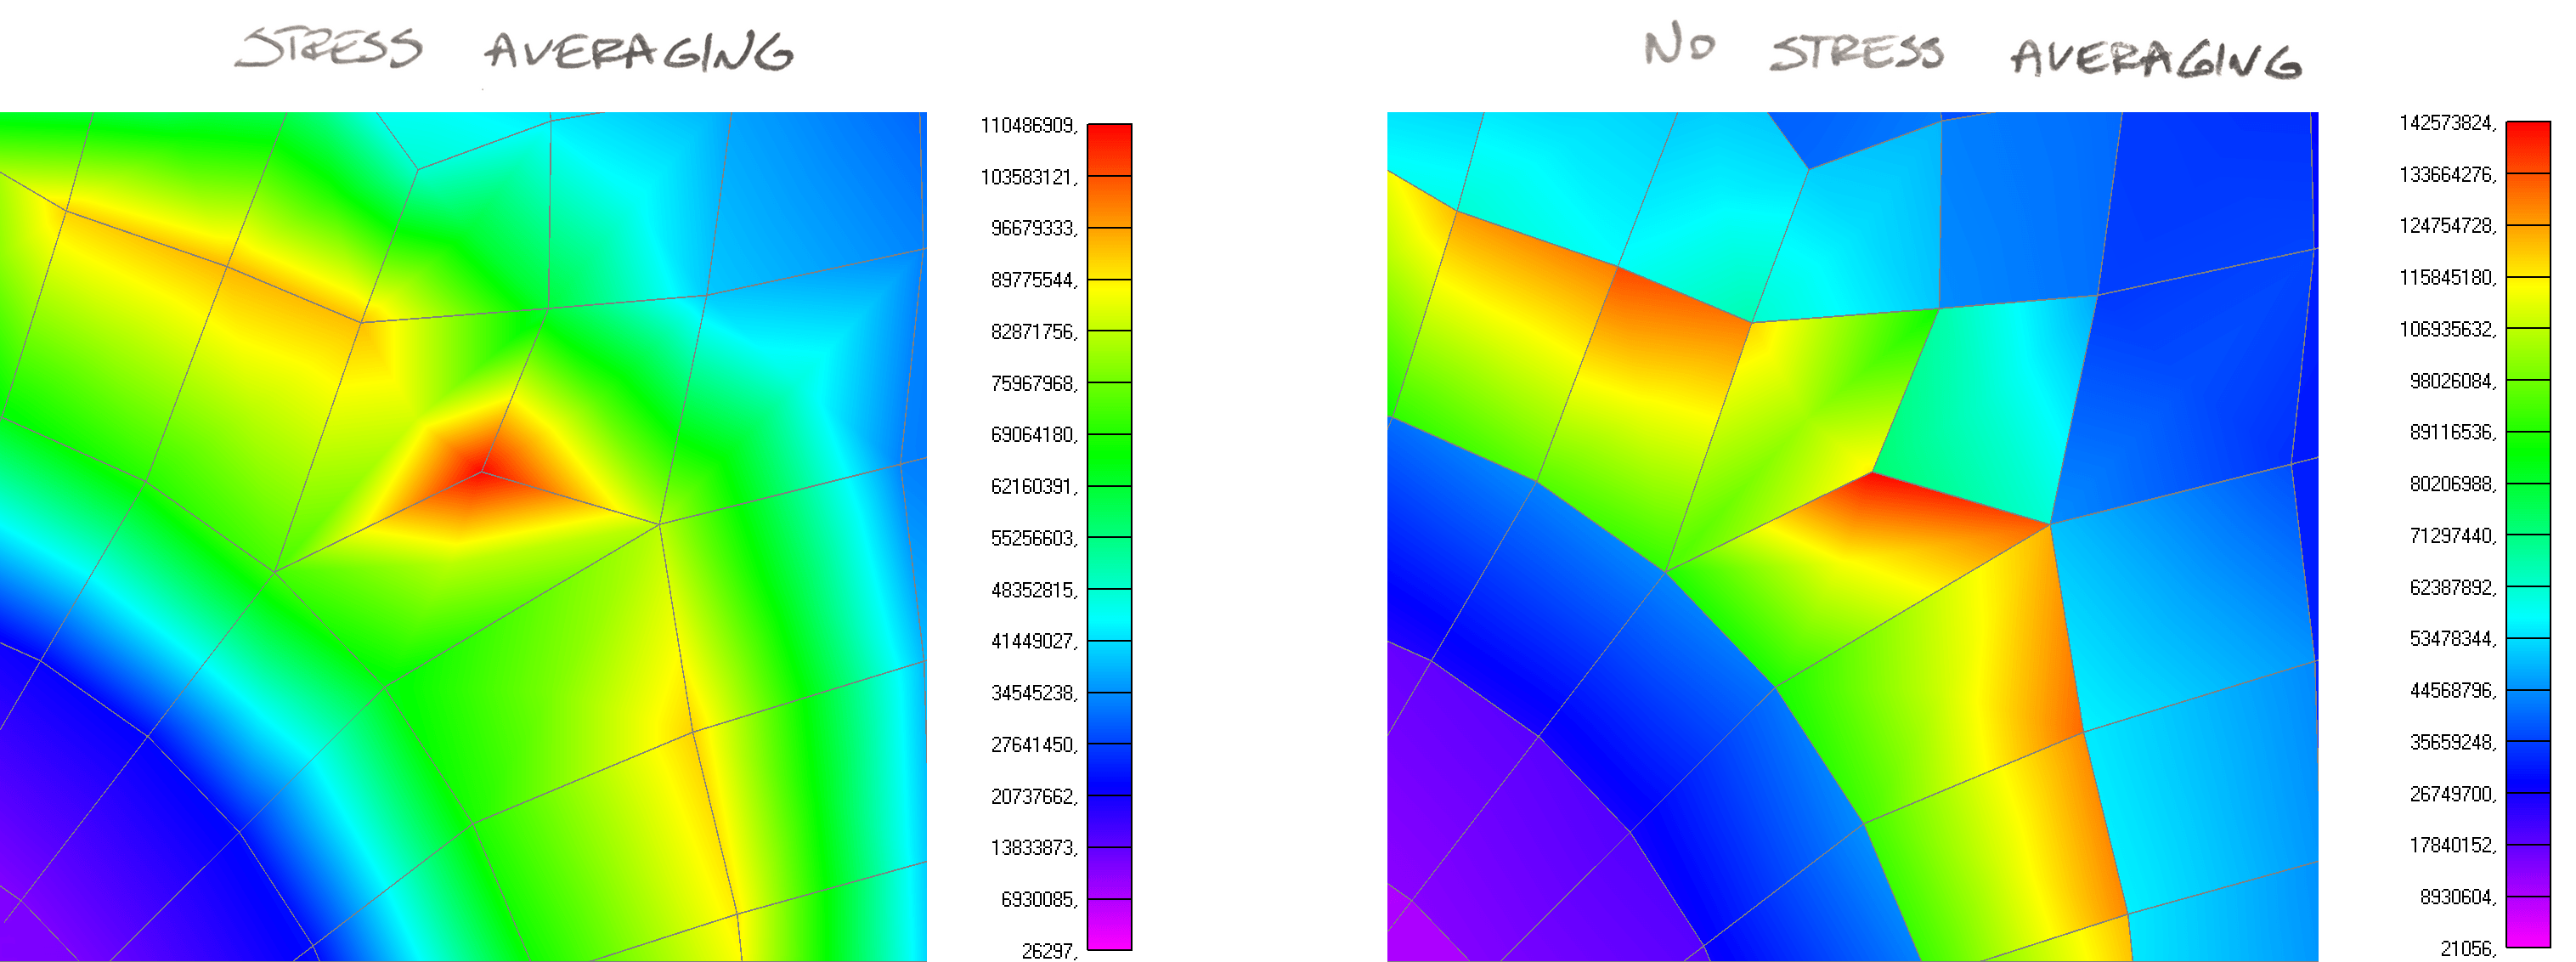 FEA results verification: Stress Averaging